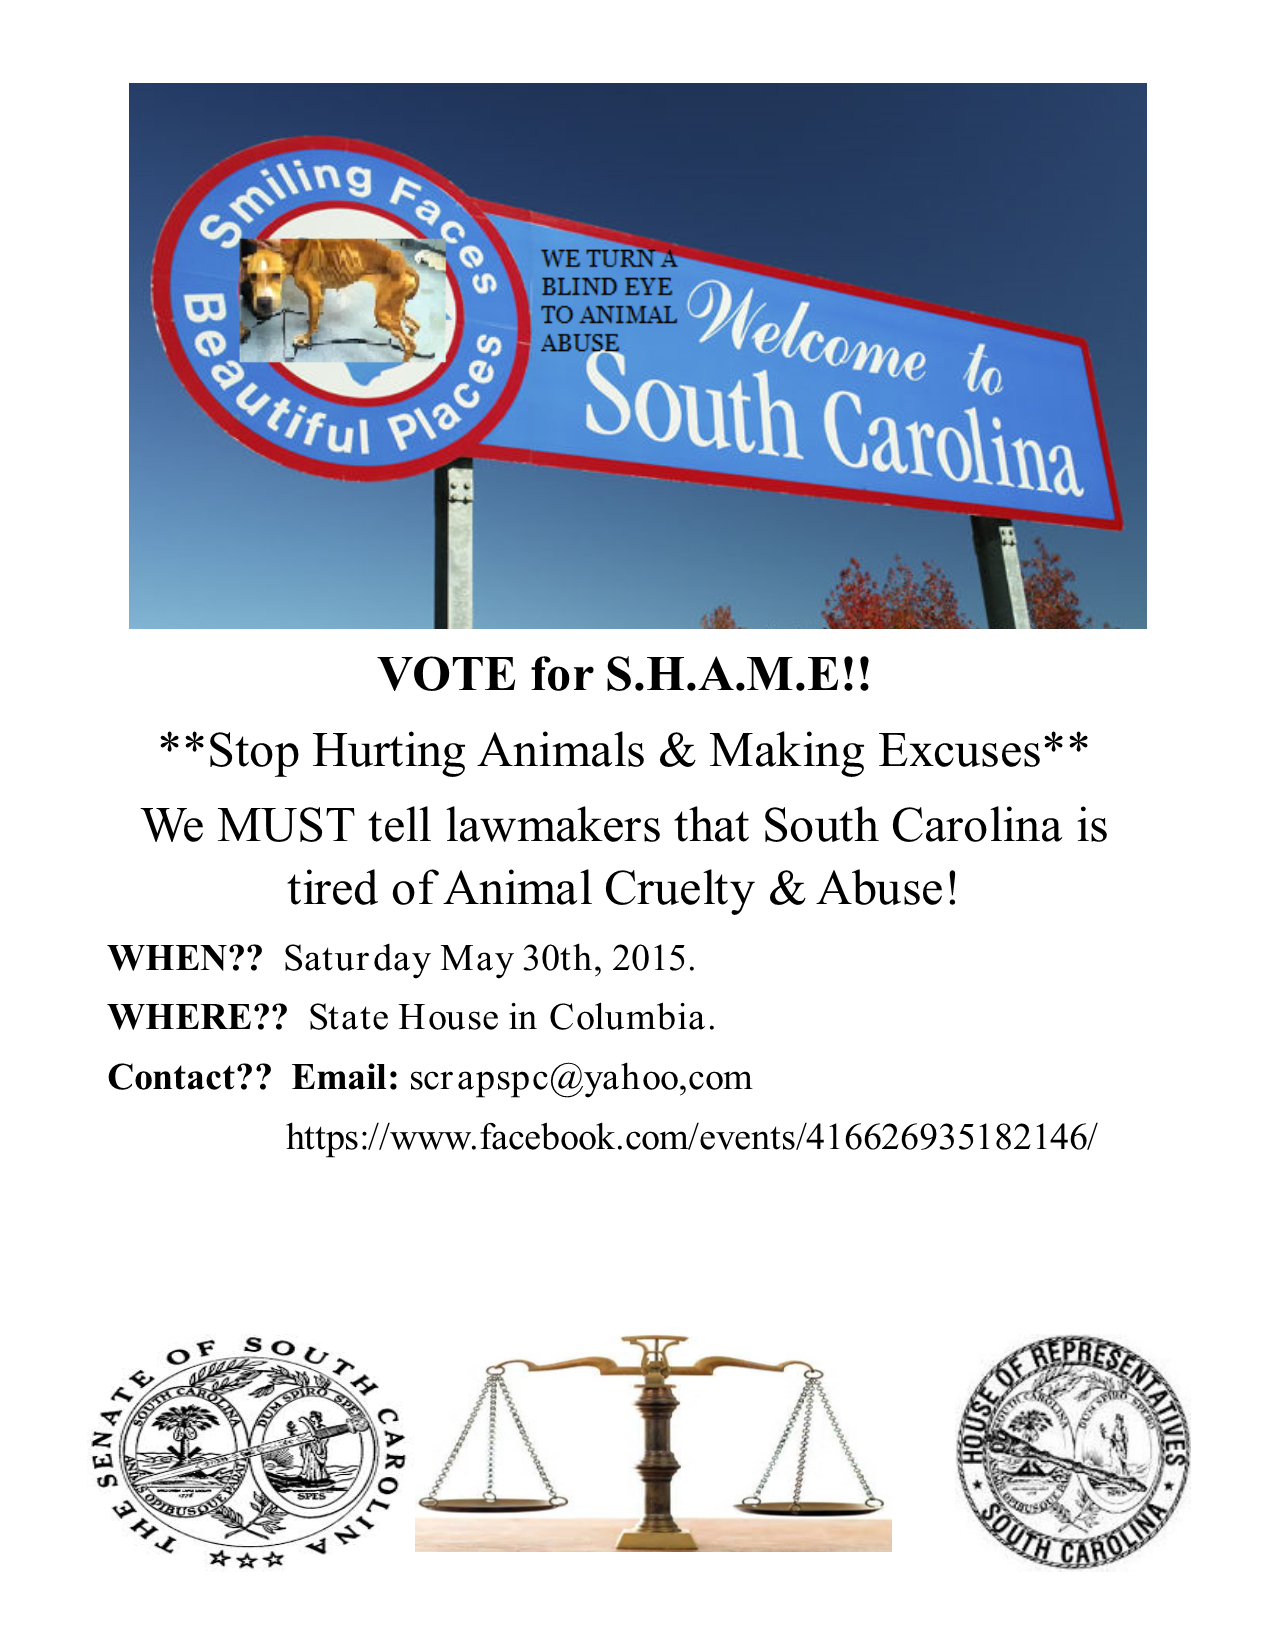 Join us in Columbia, SC. May 30th, 1pm. VOTE for S.H.A.M.E. (Stop Hurting Animals & Making Excuses)